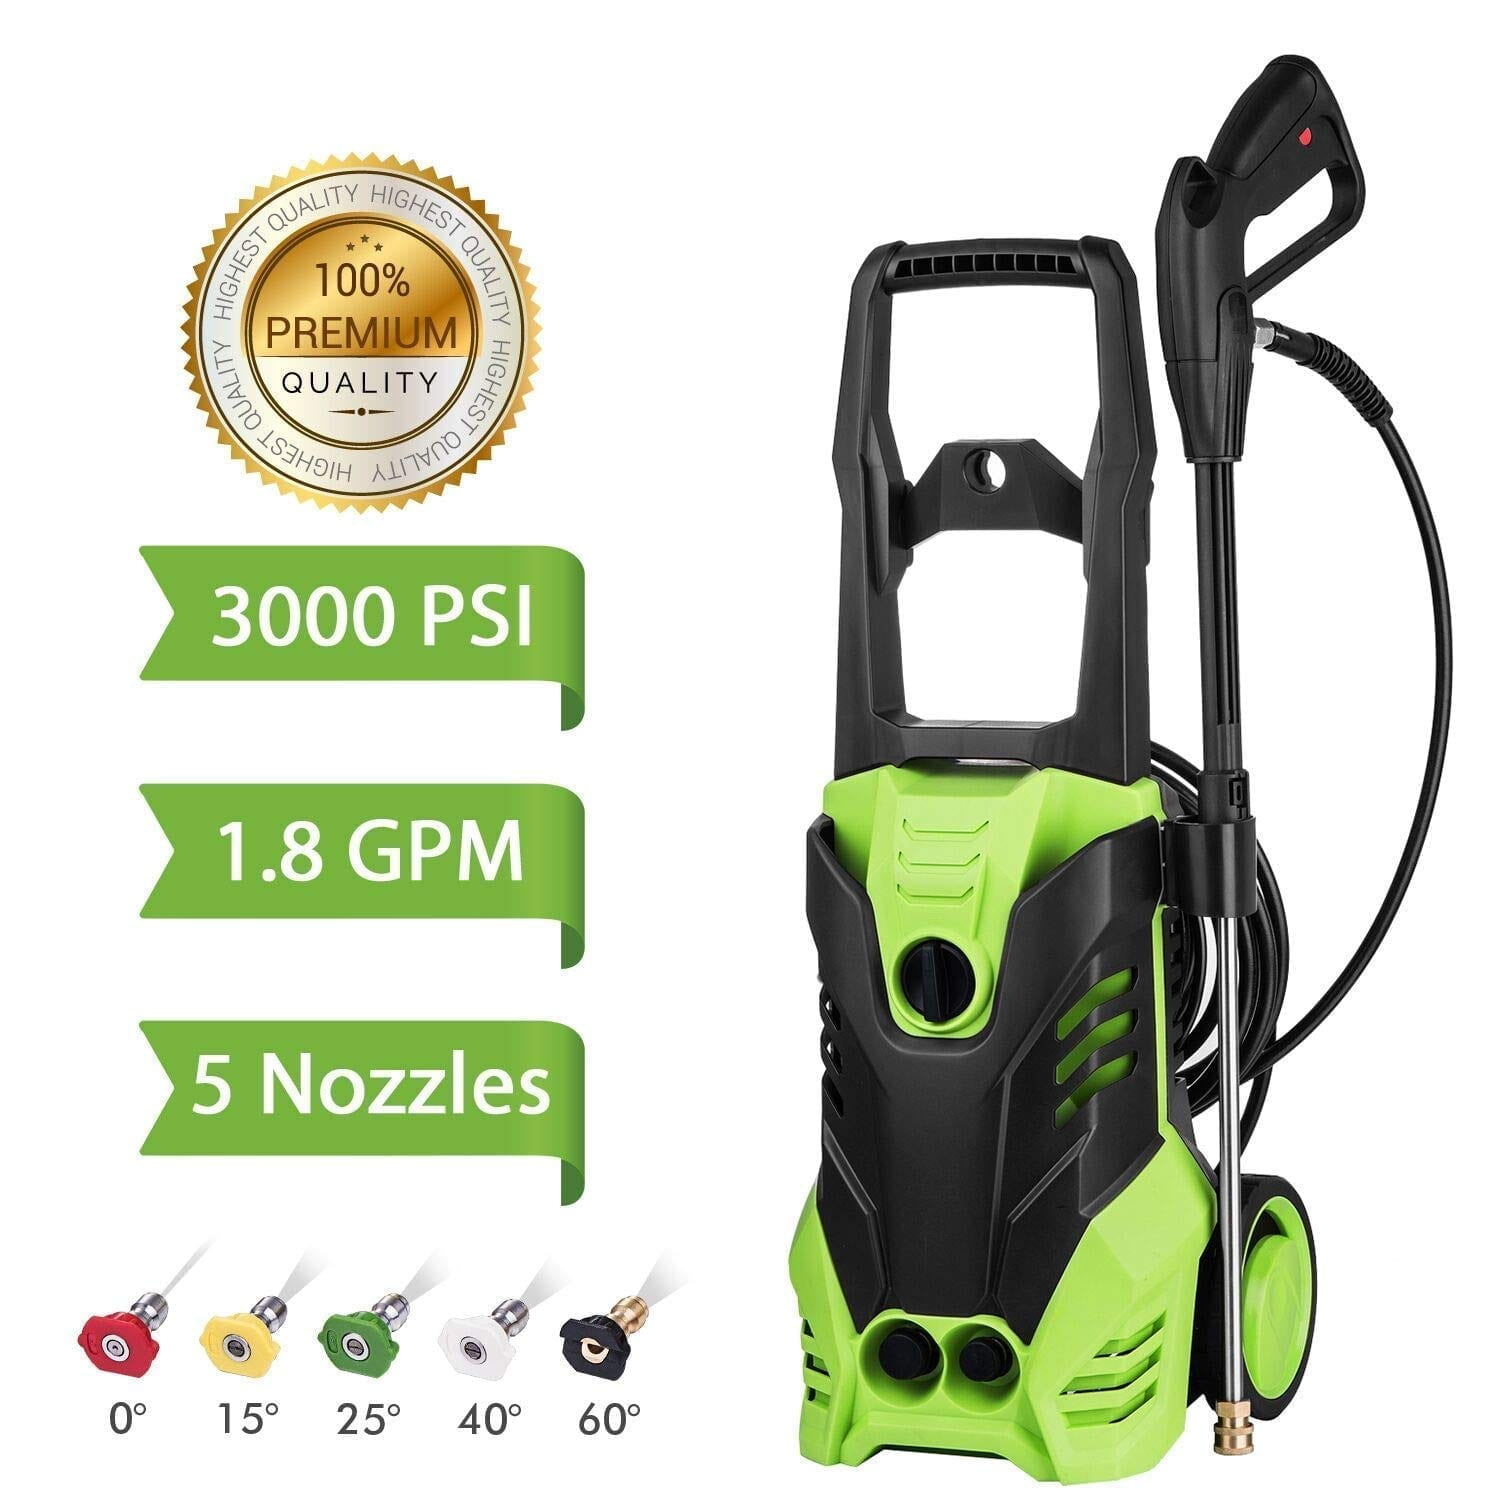 Flagup 3000psi, 1800w, 1.80 GPM Electric Pressure Washer